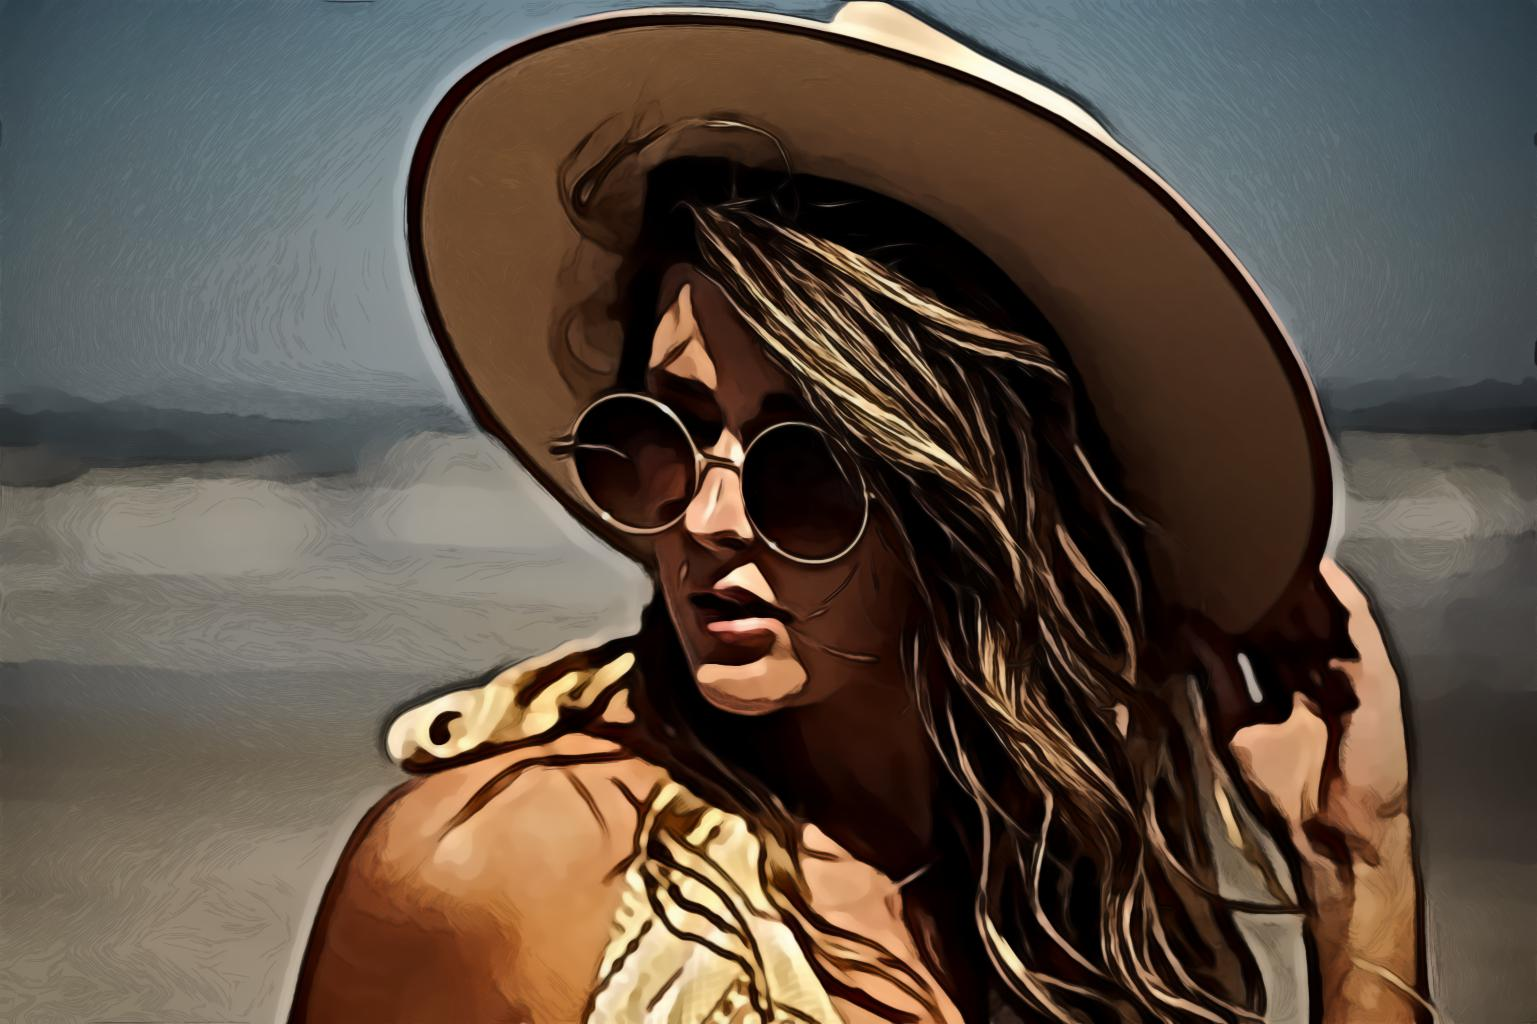 Woman wearing sunhat and sunglasses by the seashore